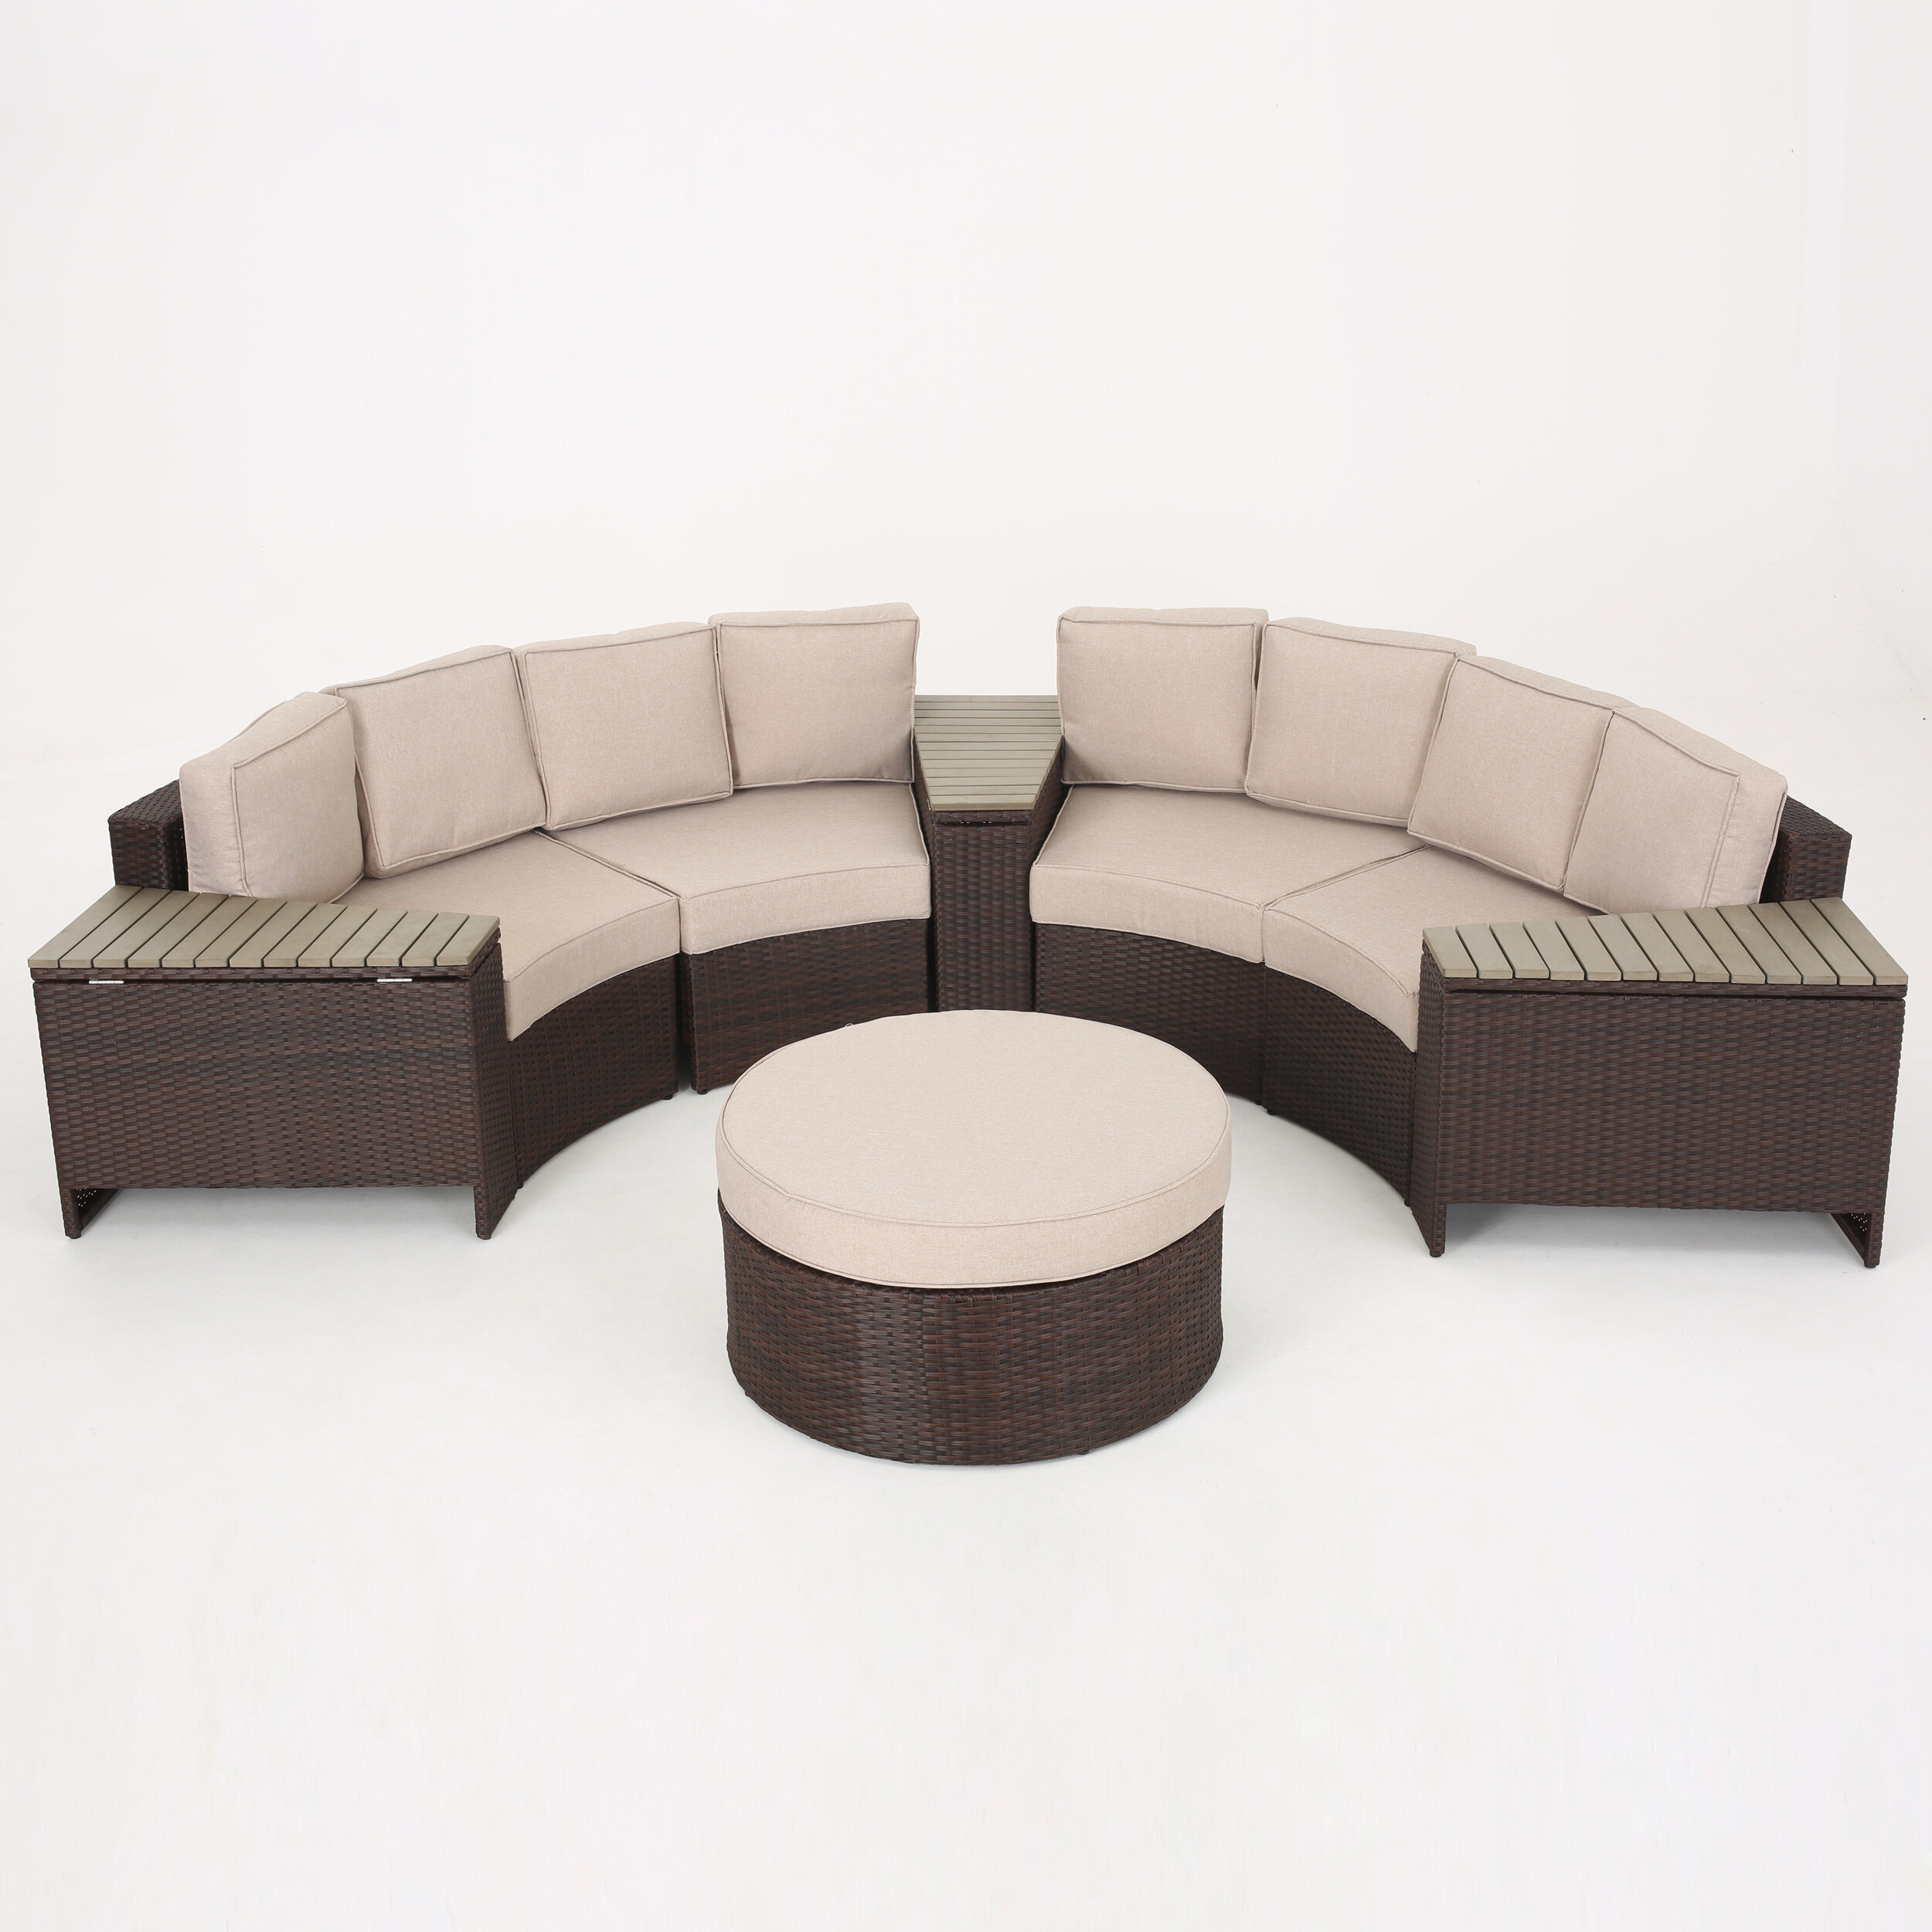 Sol 72 Outdoor Bermuda 8 Piece Rattan Sectional Seating Group With Cushions Reviews Wayfair